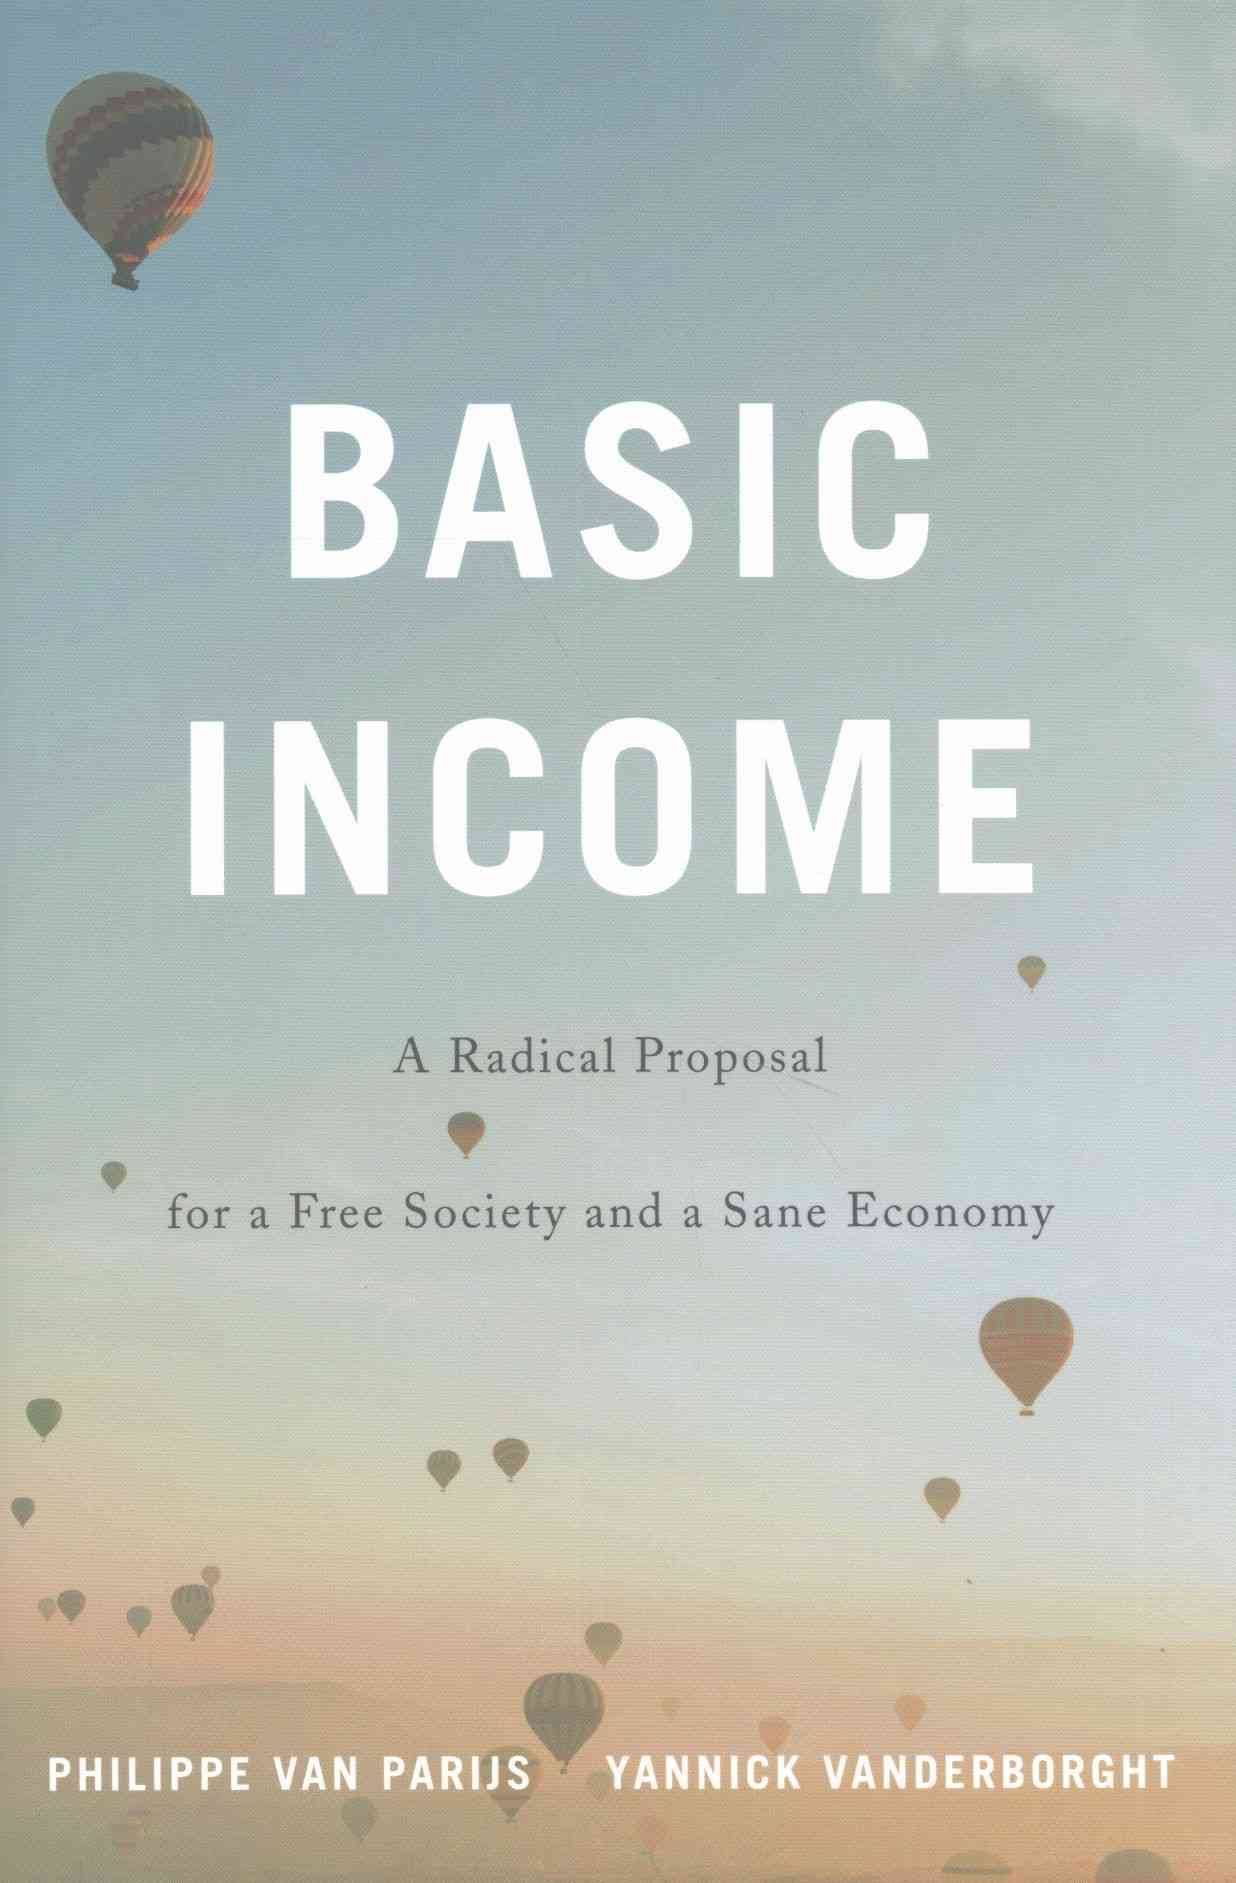 Review: 'Radical proposal' provides basic income details